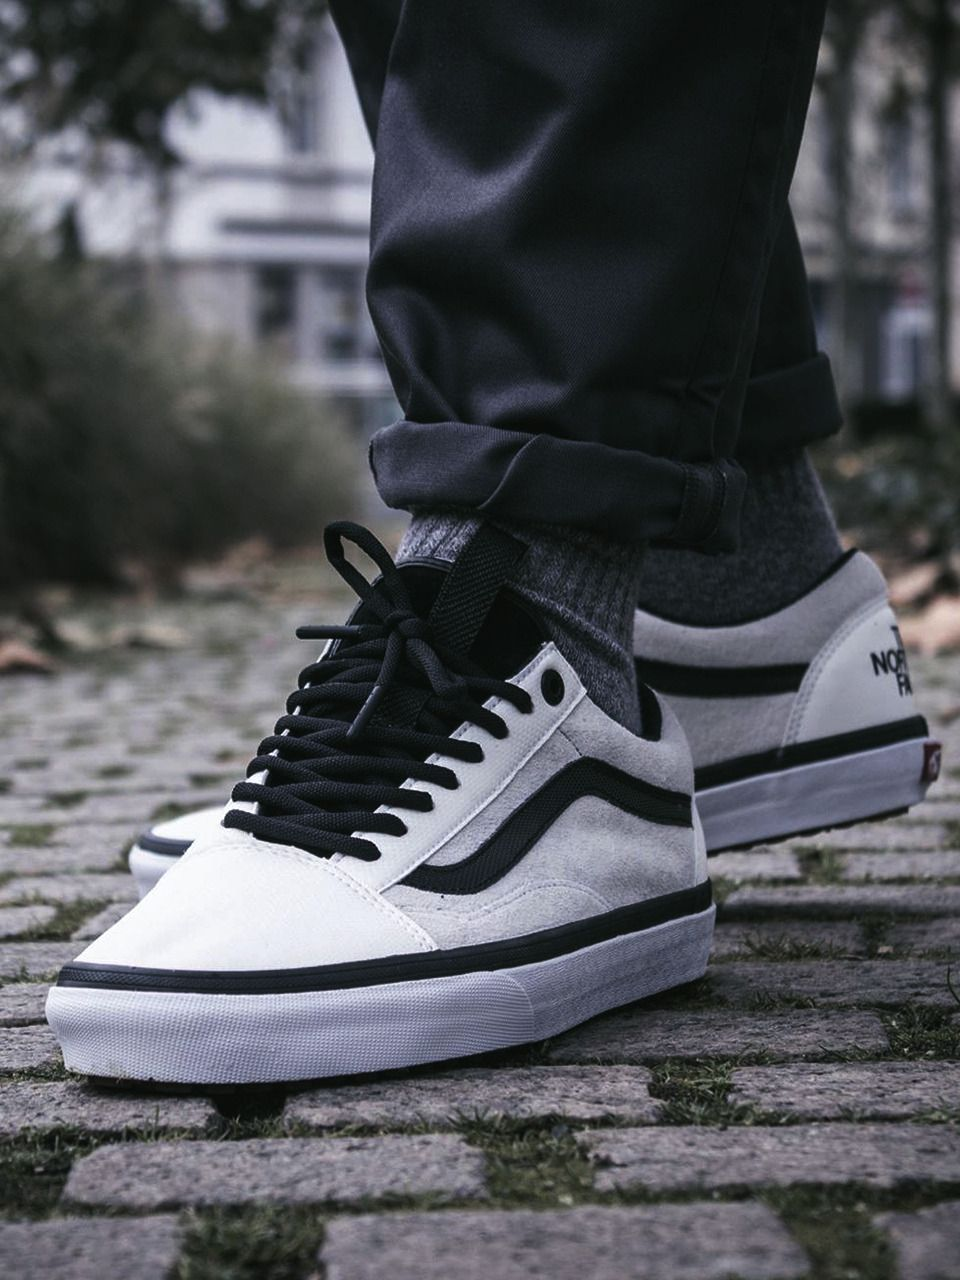 97259145cbf39e The North Face x Vans Old Skool - 2017 (by chrisflanell) Buy here ...